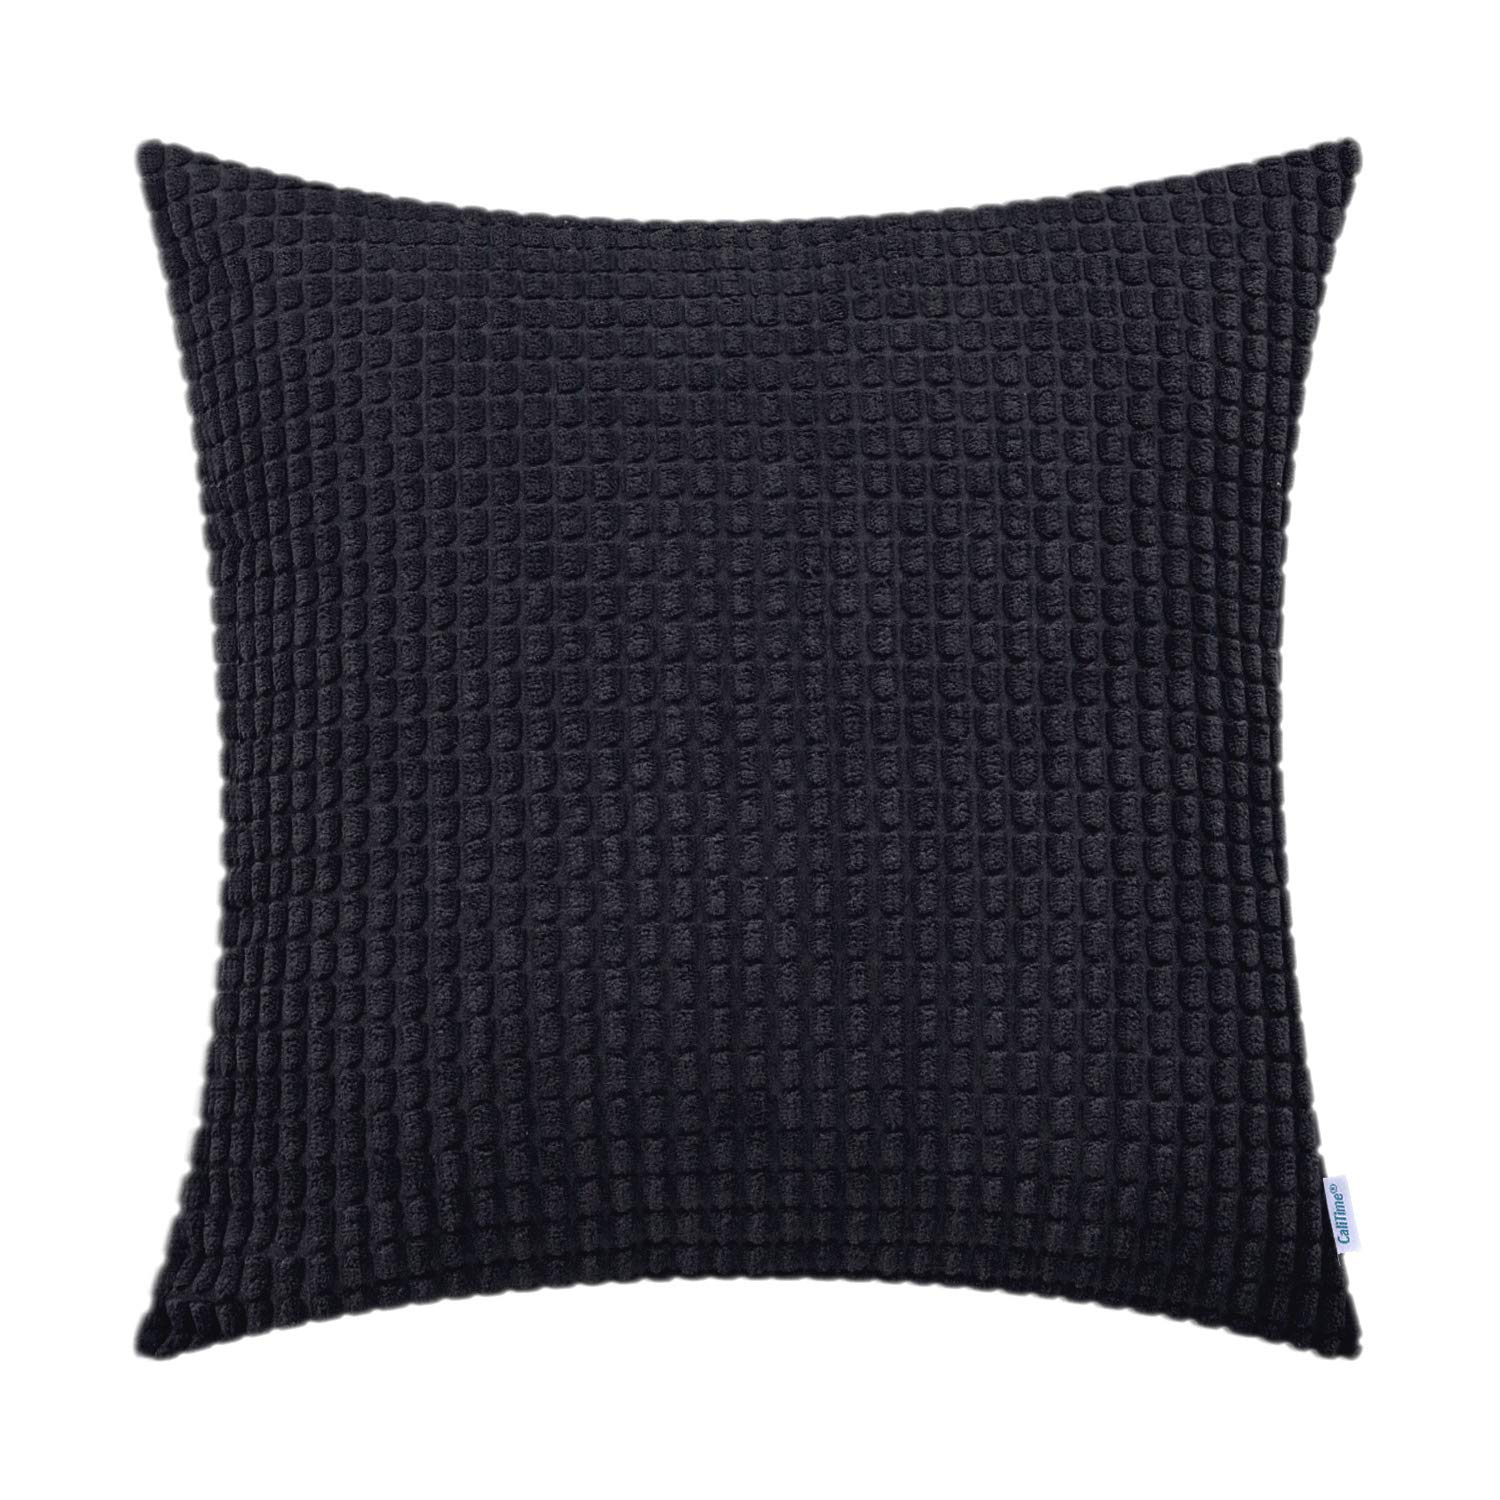 CaliTime Cozy Throw Pillow Cover Case for Couch Sofa Bed Comfortable Supersoft Corduroy Corn Striped Both Sides 22 X 22 Inches Black